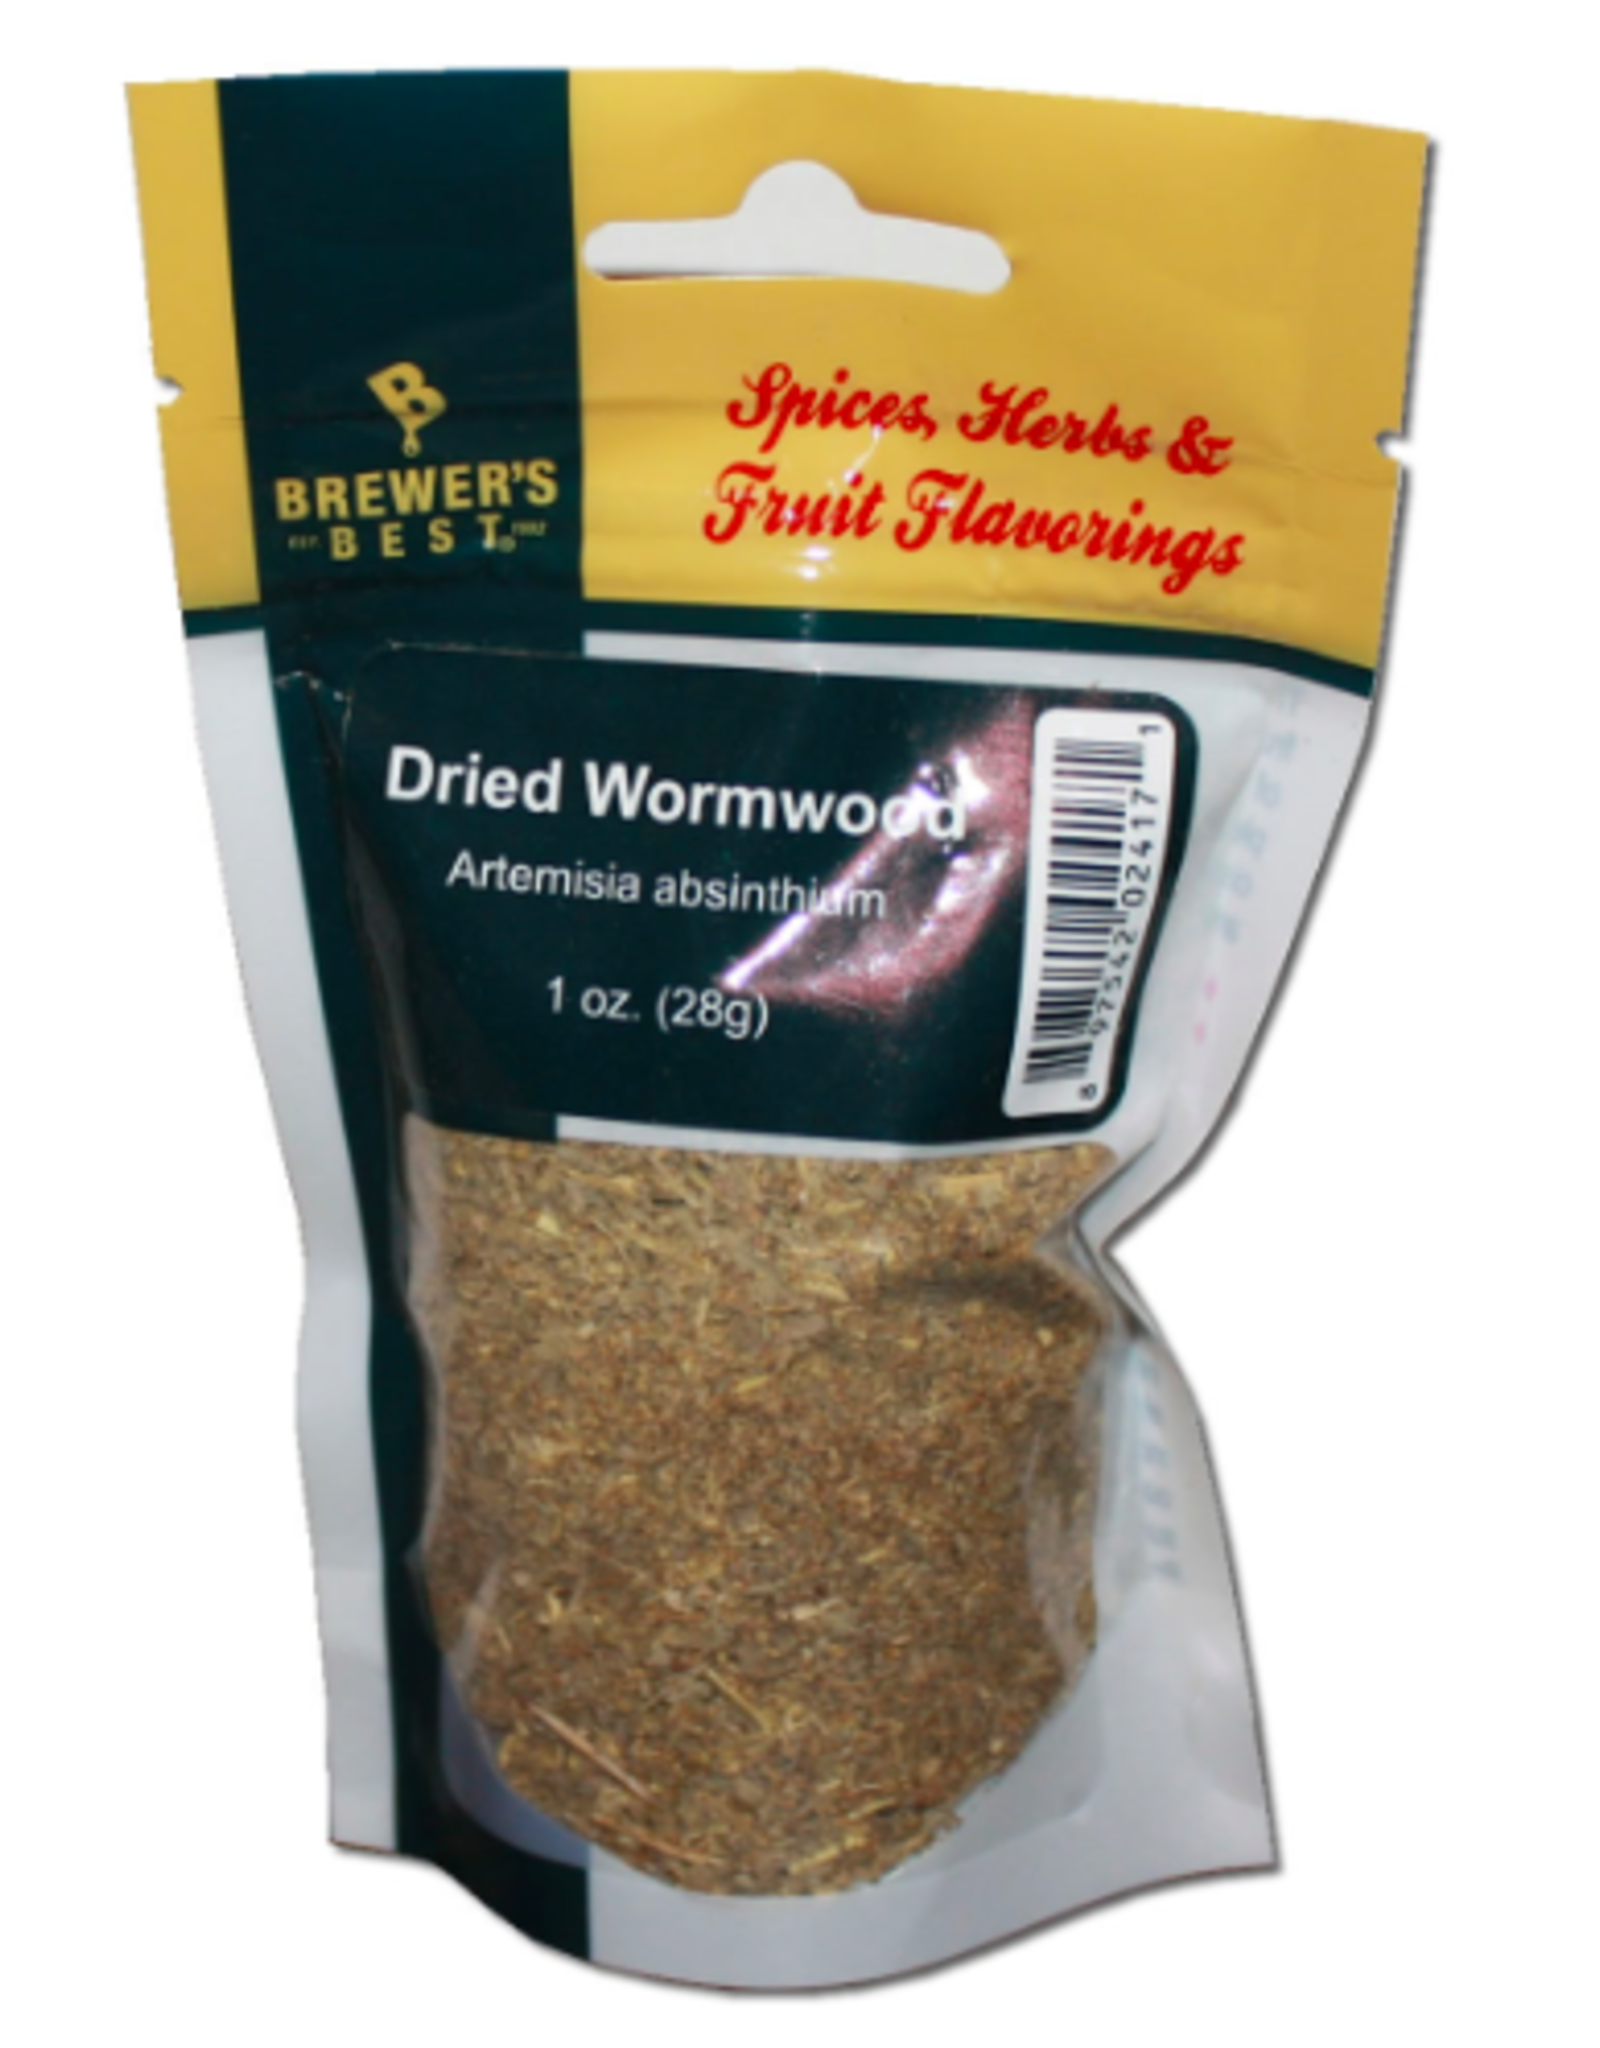 DRIED WORMWOOD 1 OZ